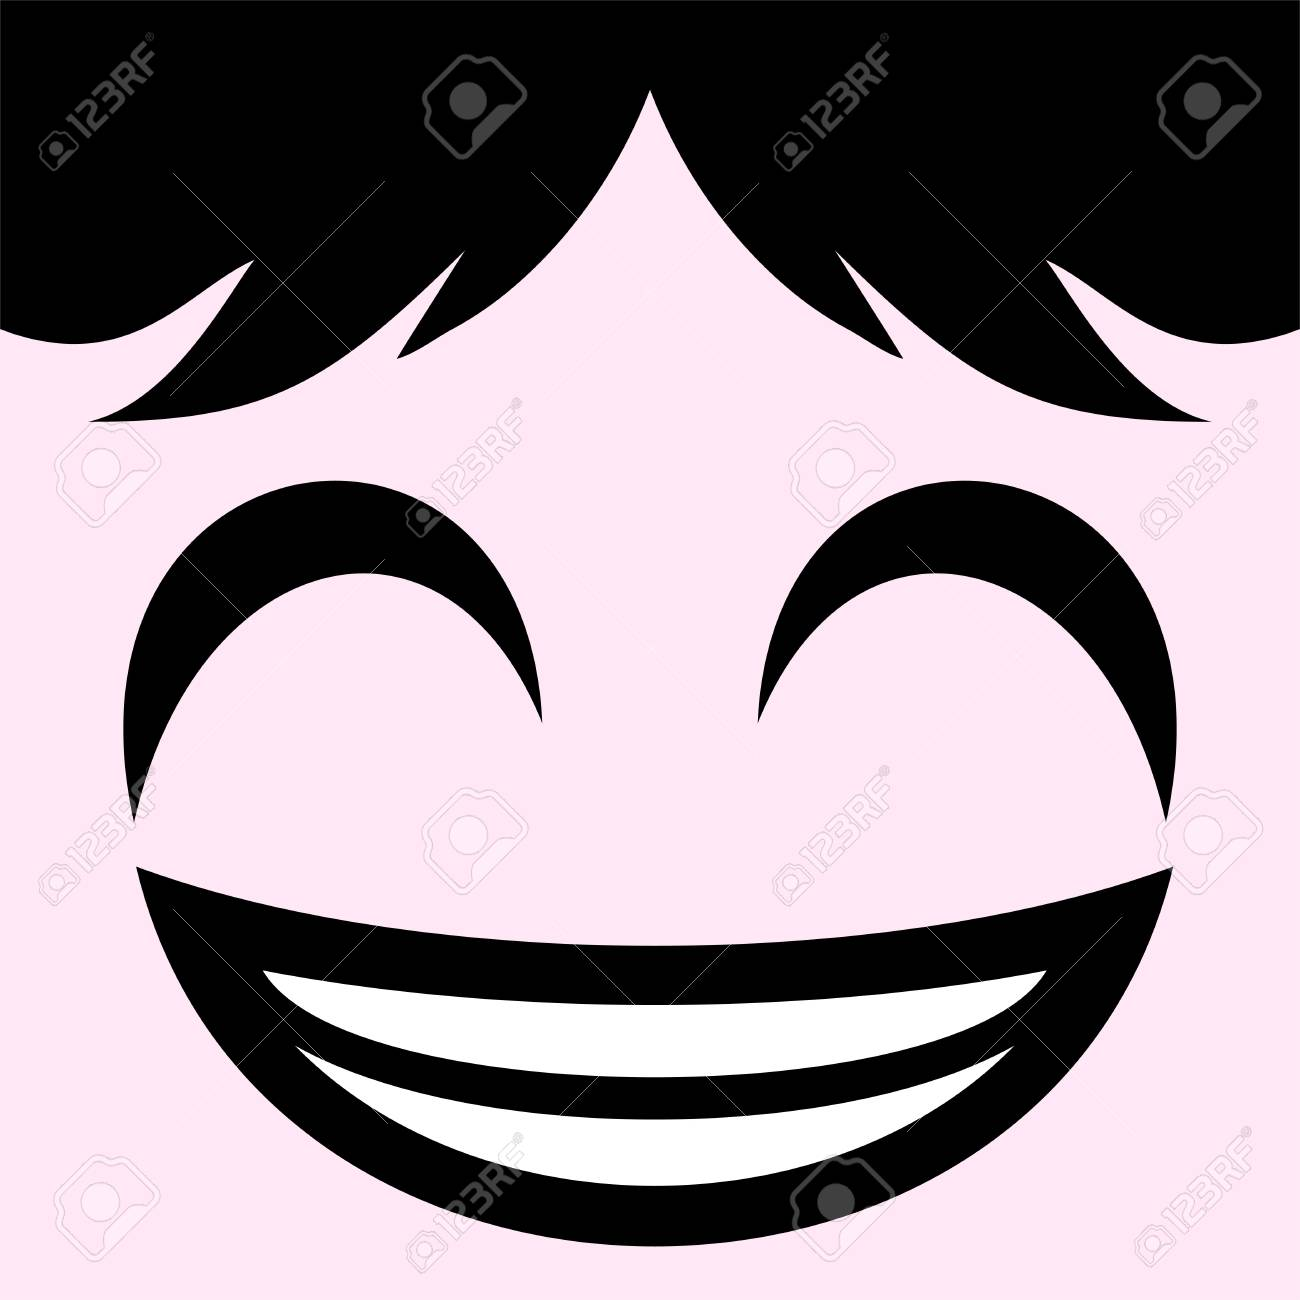 happy face draw royalty free cliparts vectors and stock